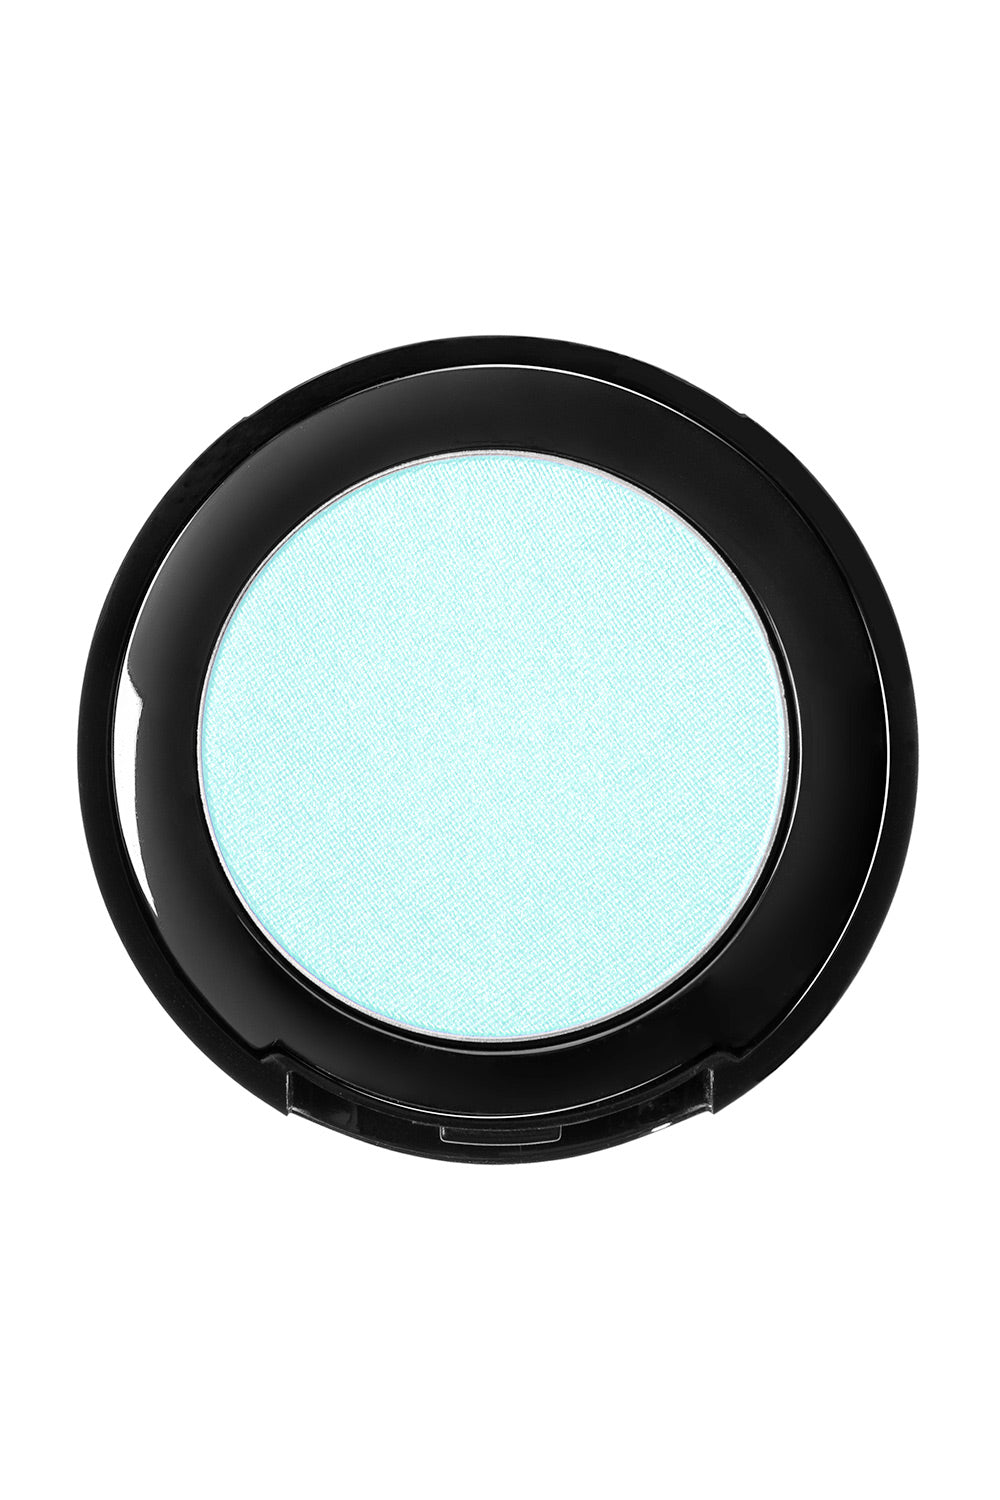 Type 1 Eyeshadow - Pool Party